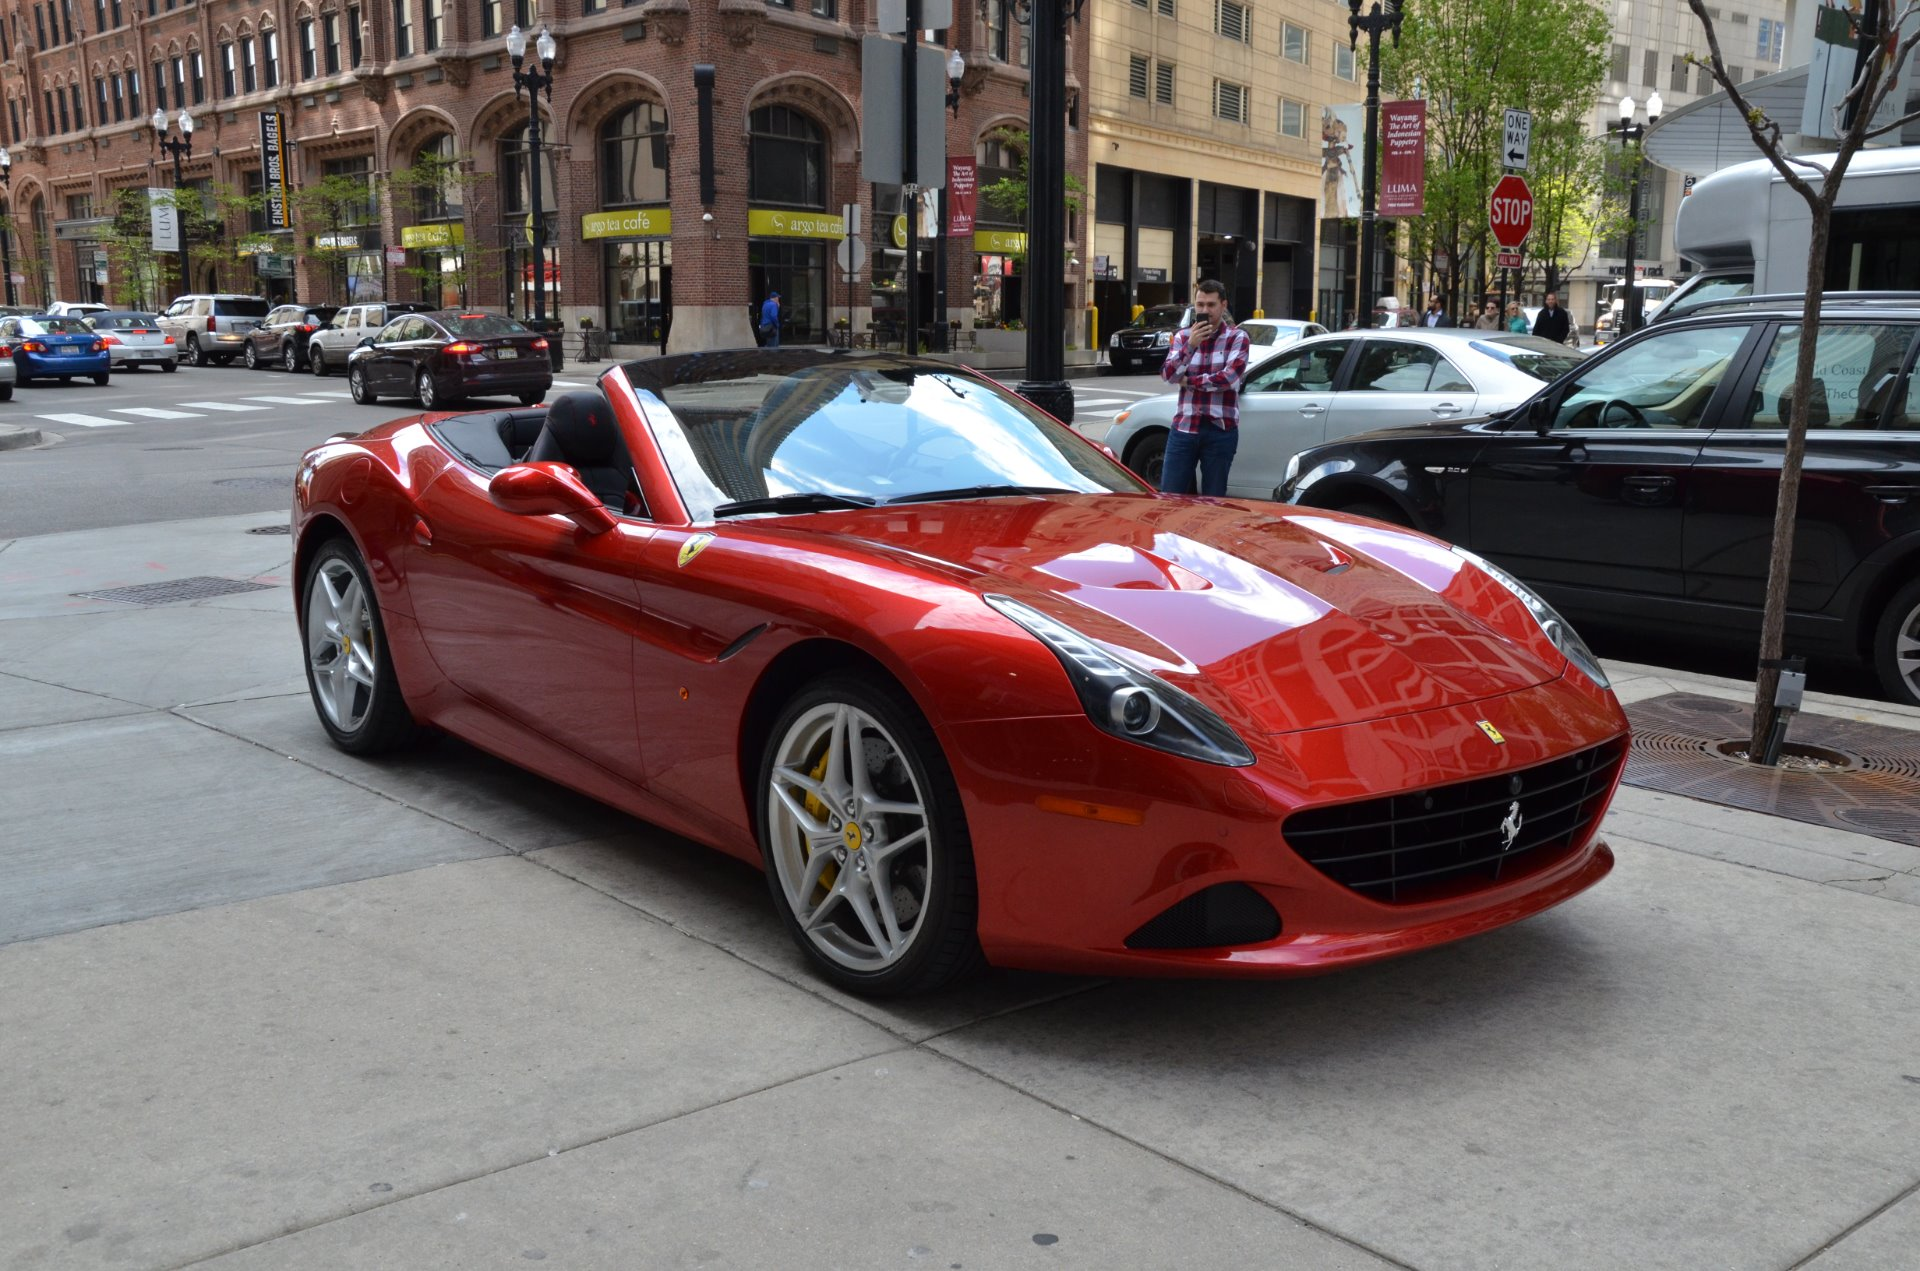 2016 ferrari california t stock l322ab for sale near. Black Bedroom Furniture Sets. Home Design Ideas